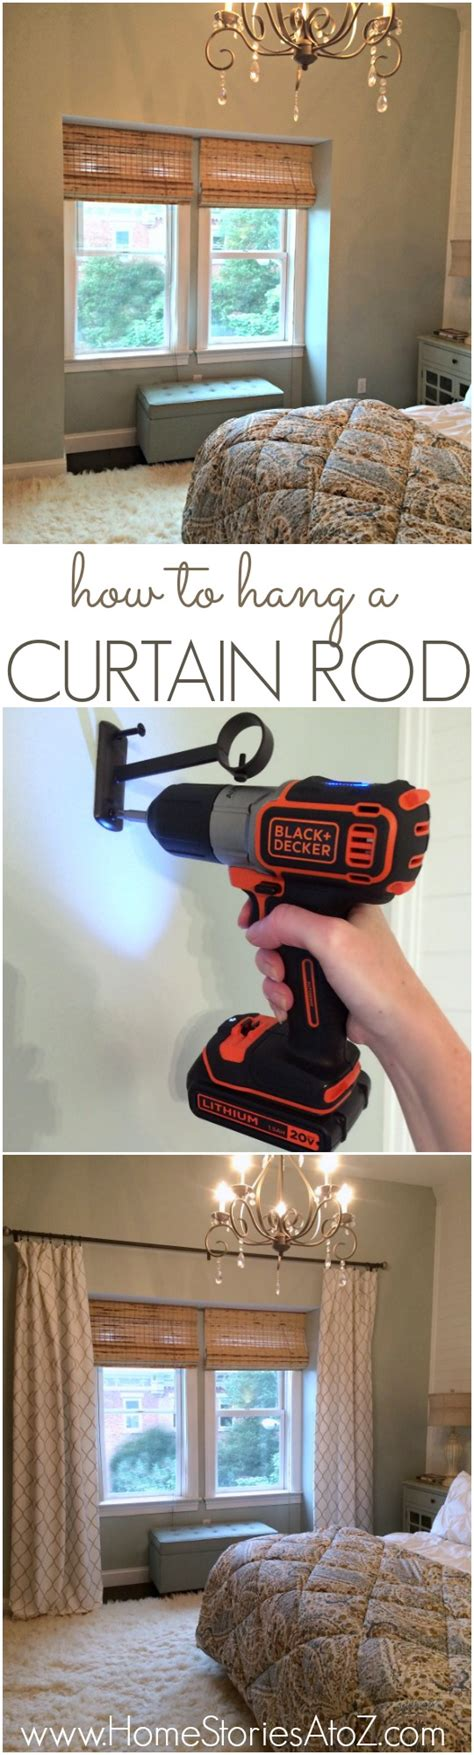 how to hang a curtain how to hang a curtain rod and black decker drill giveaway